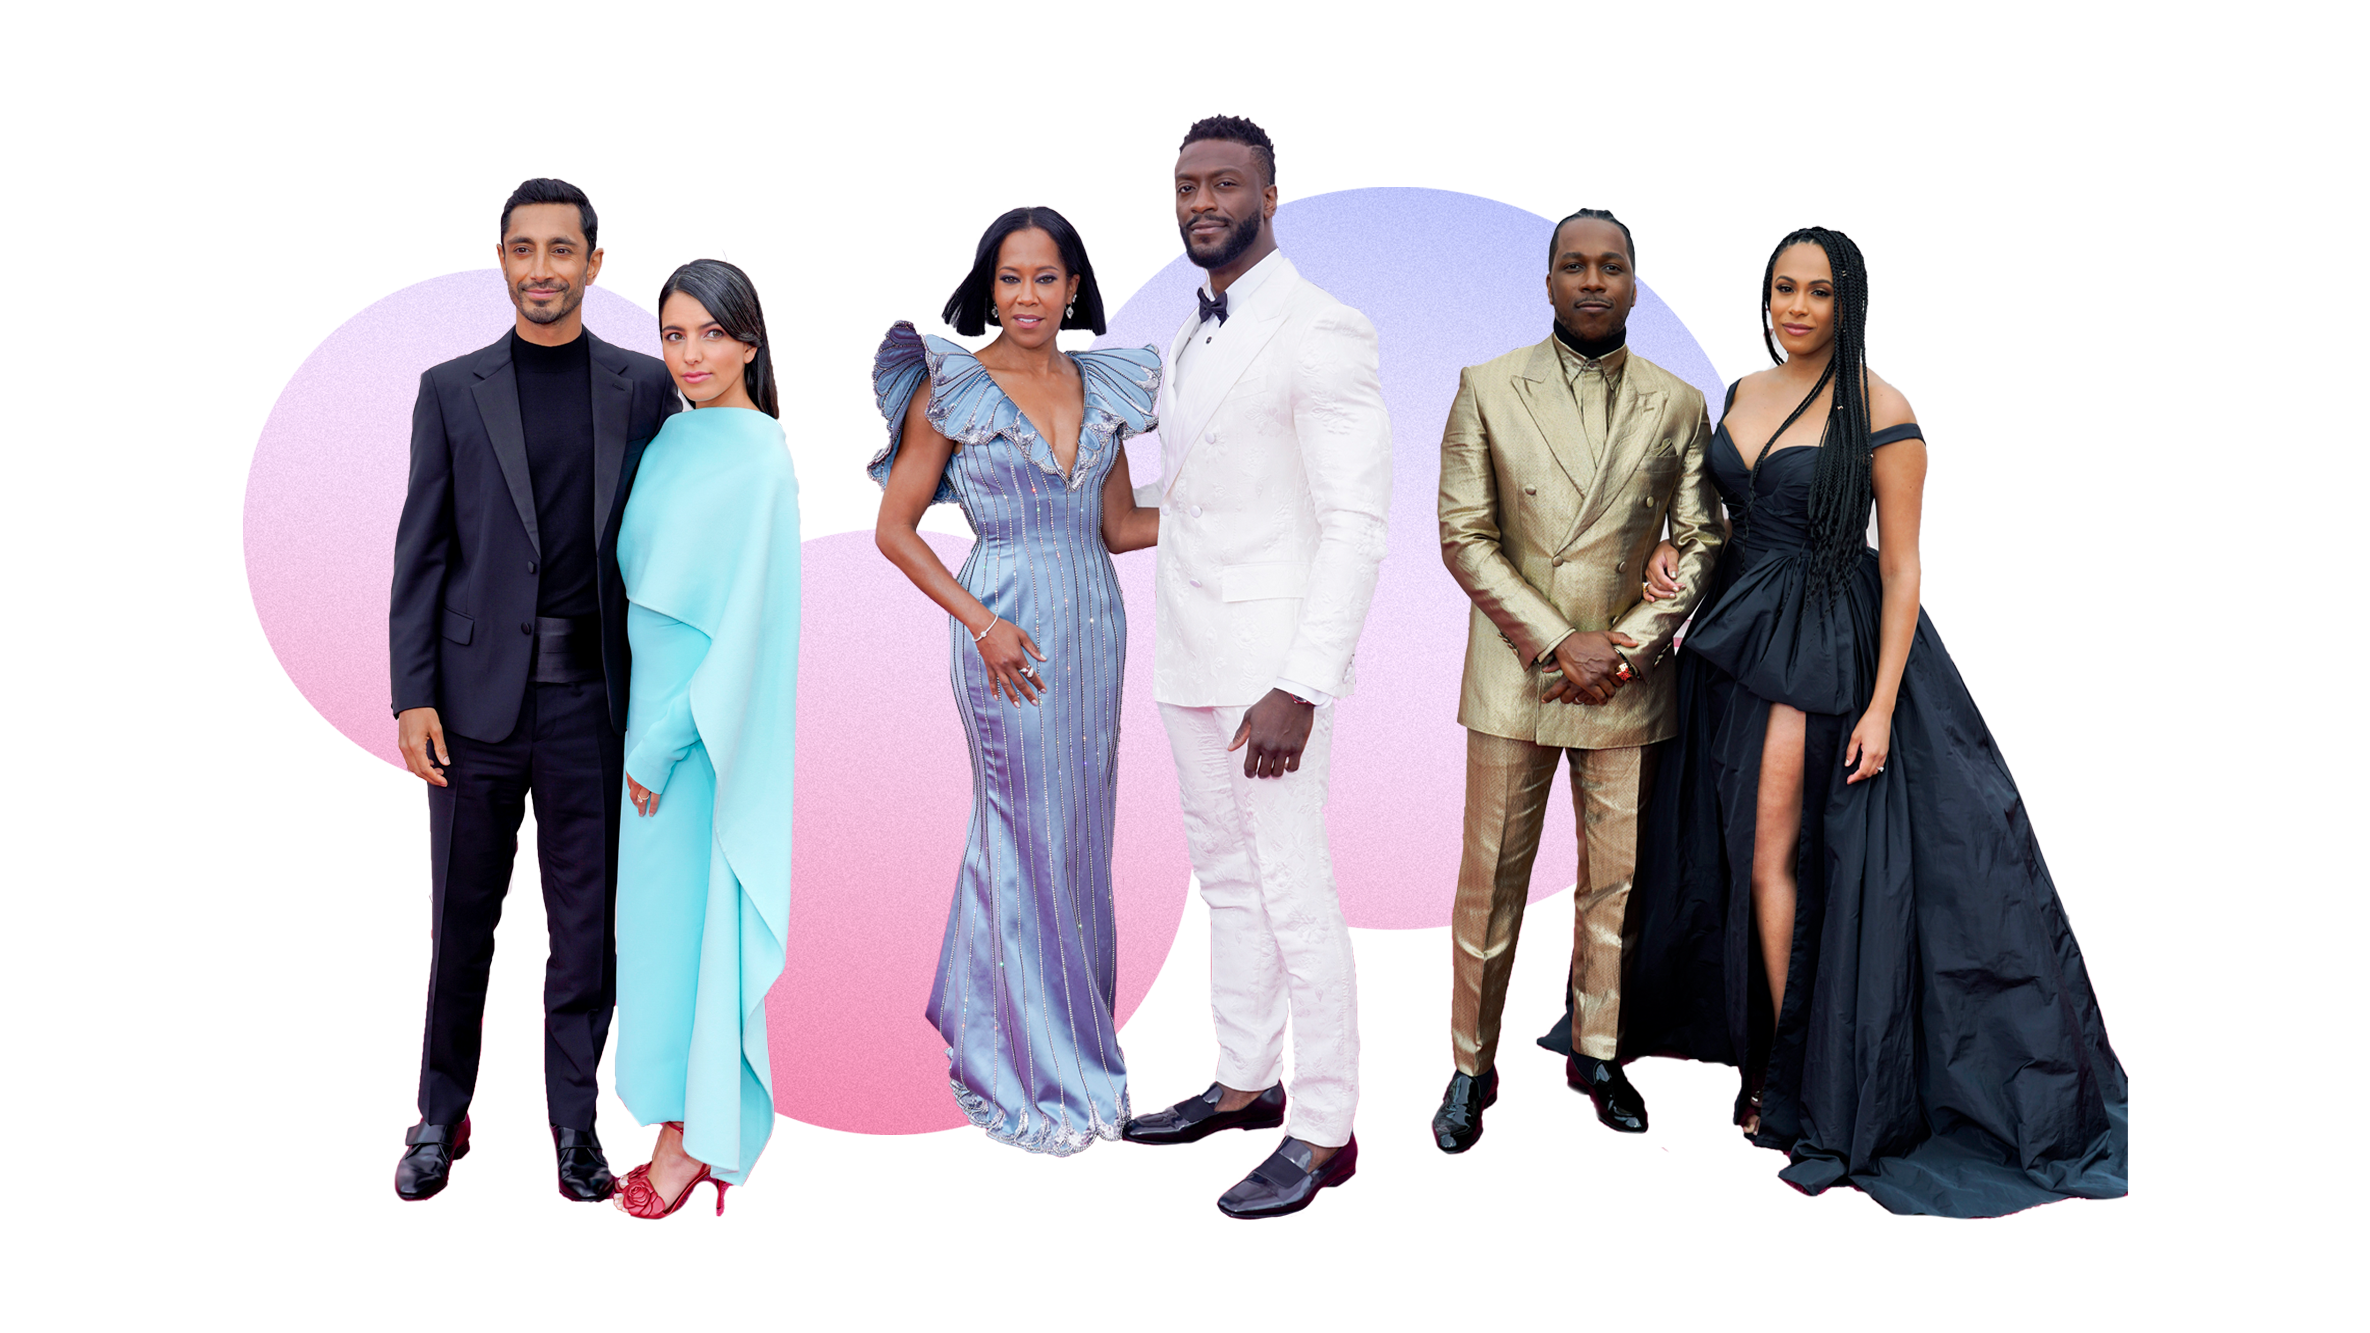 oscars-2021-couples-revised